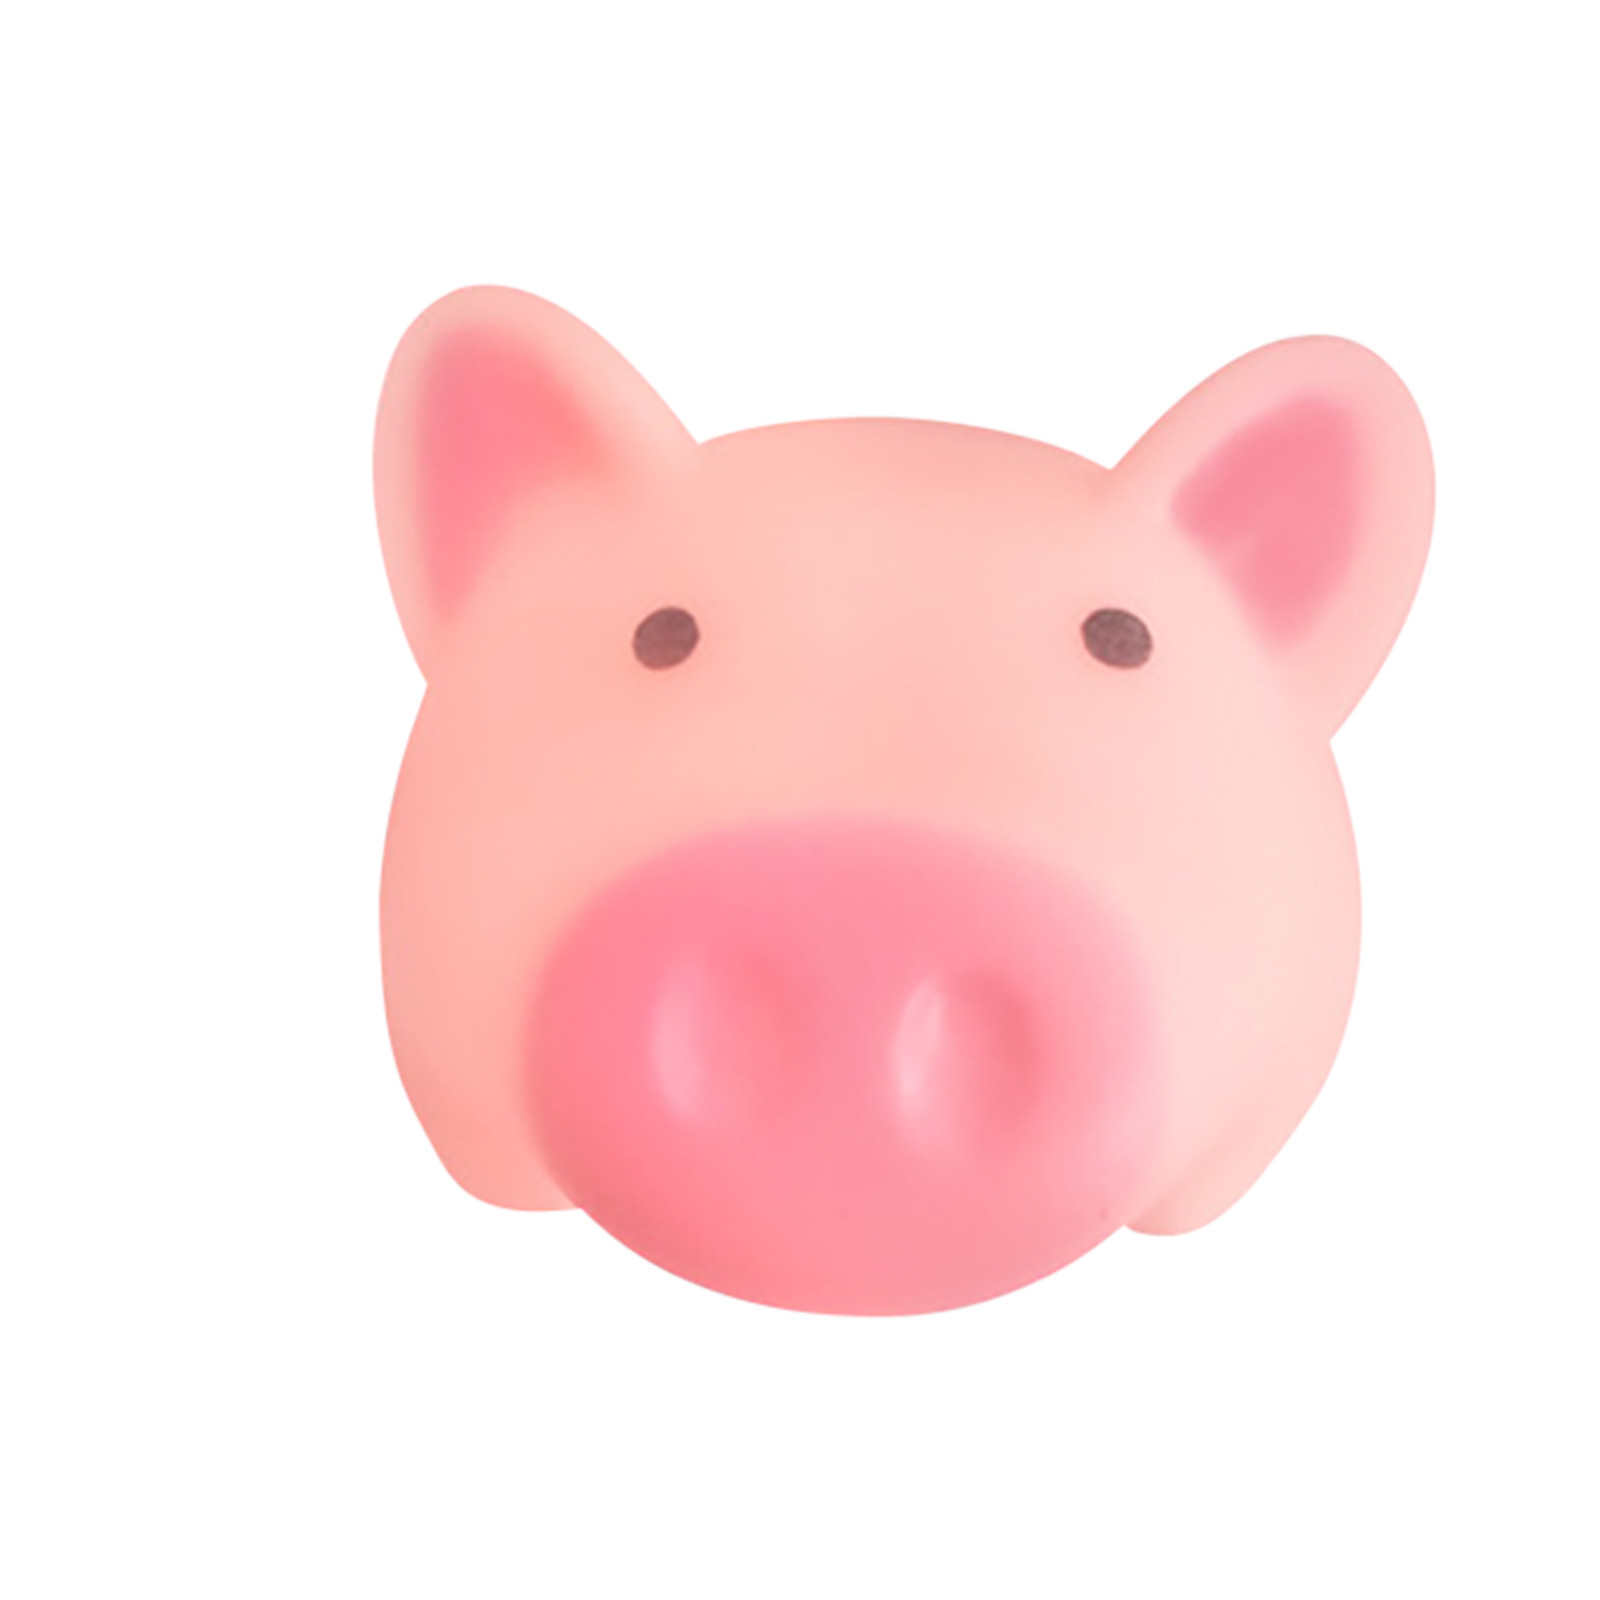 Snailhouse New Cartoon Soft Cute Pink Pig Toy Pig Cute Pink Toy To Vent Children Bath Pig Pinching Joys Stress Vent Toy#4 img5